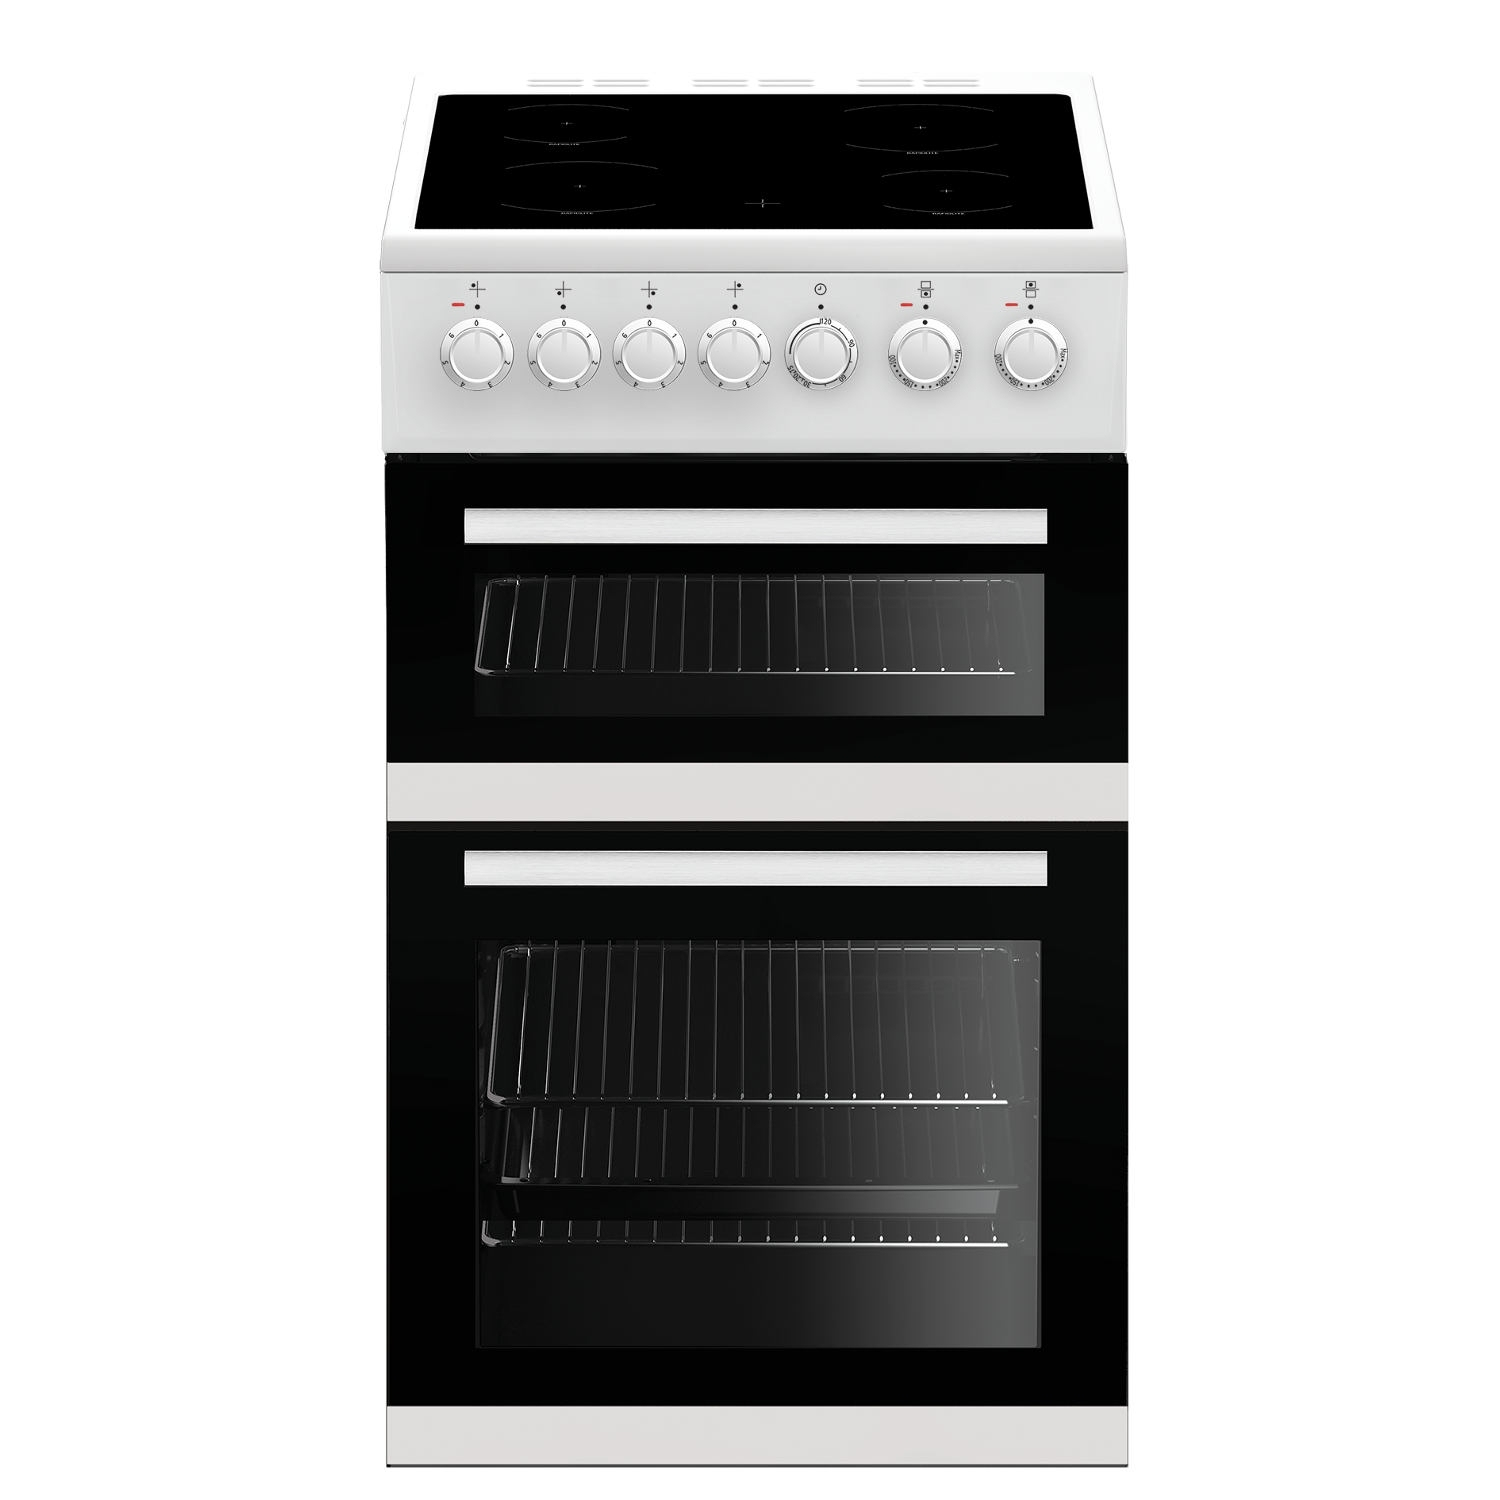 Beko 50cm Double Oven Electric Cooker - White - A/A Rated - 0